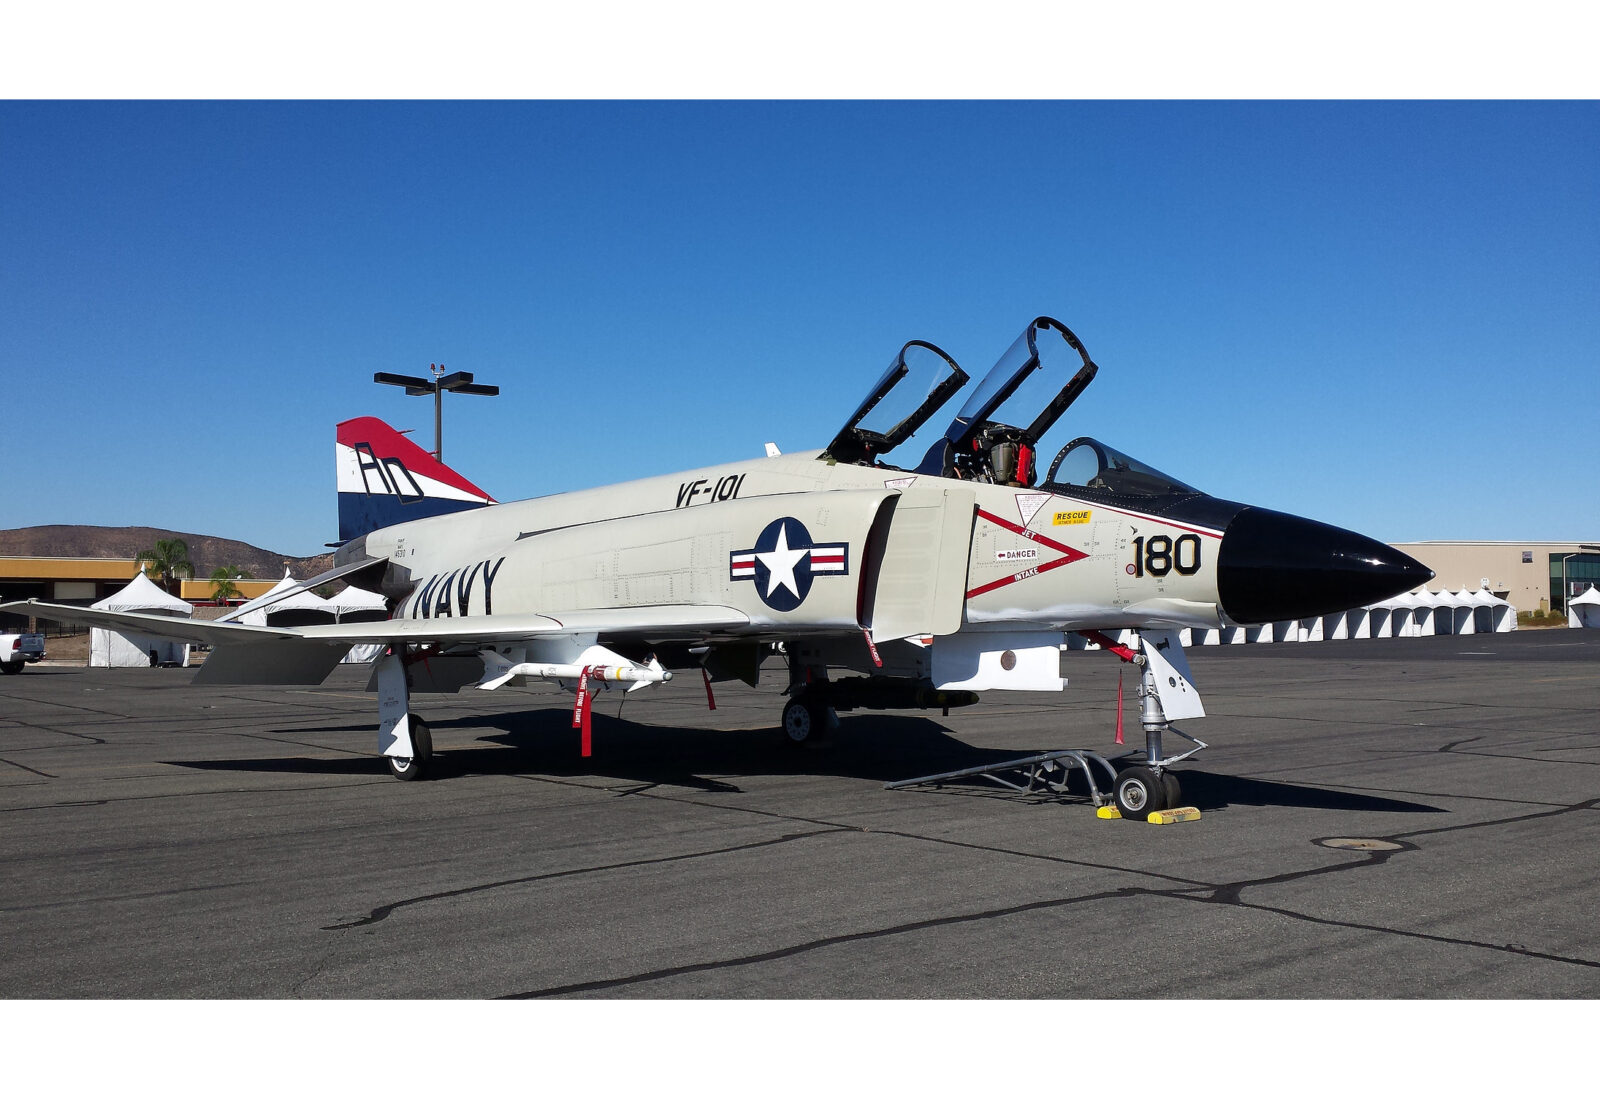 For Sale: McDonnell F4H-1F Phantom II - The Only Privately Owned F-4 Phantom Capable of Flight